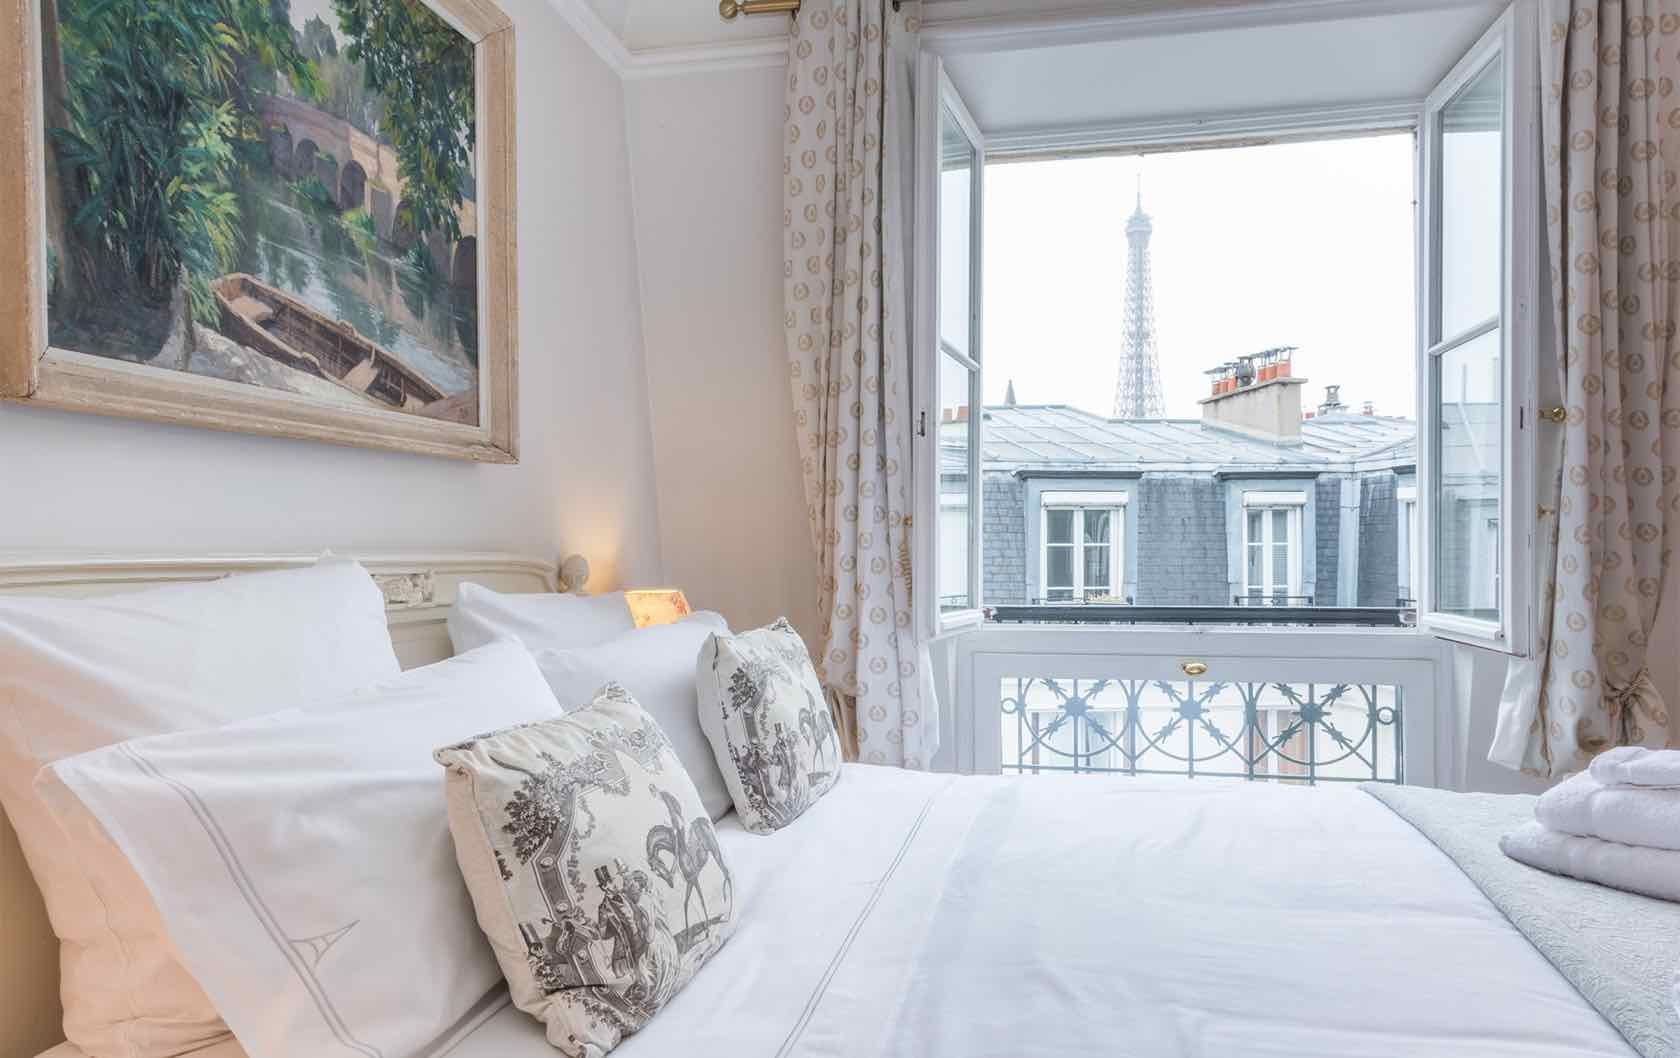 Staying a month or longer see our long term furnished rentals in paris